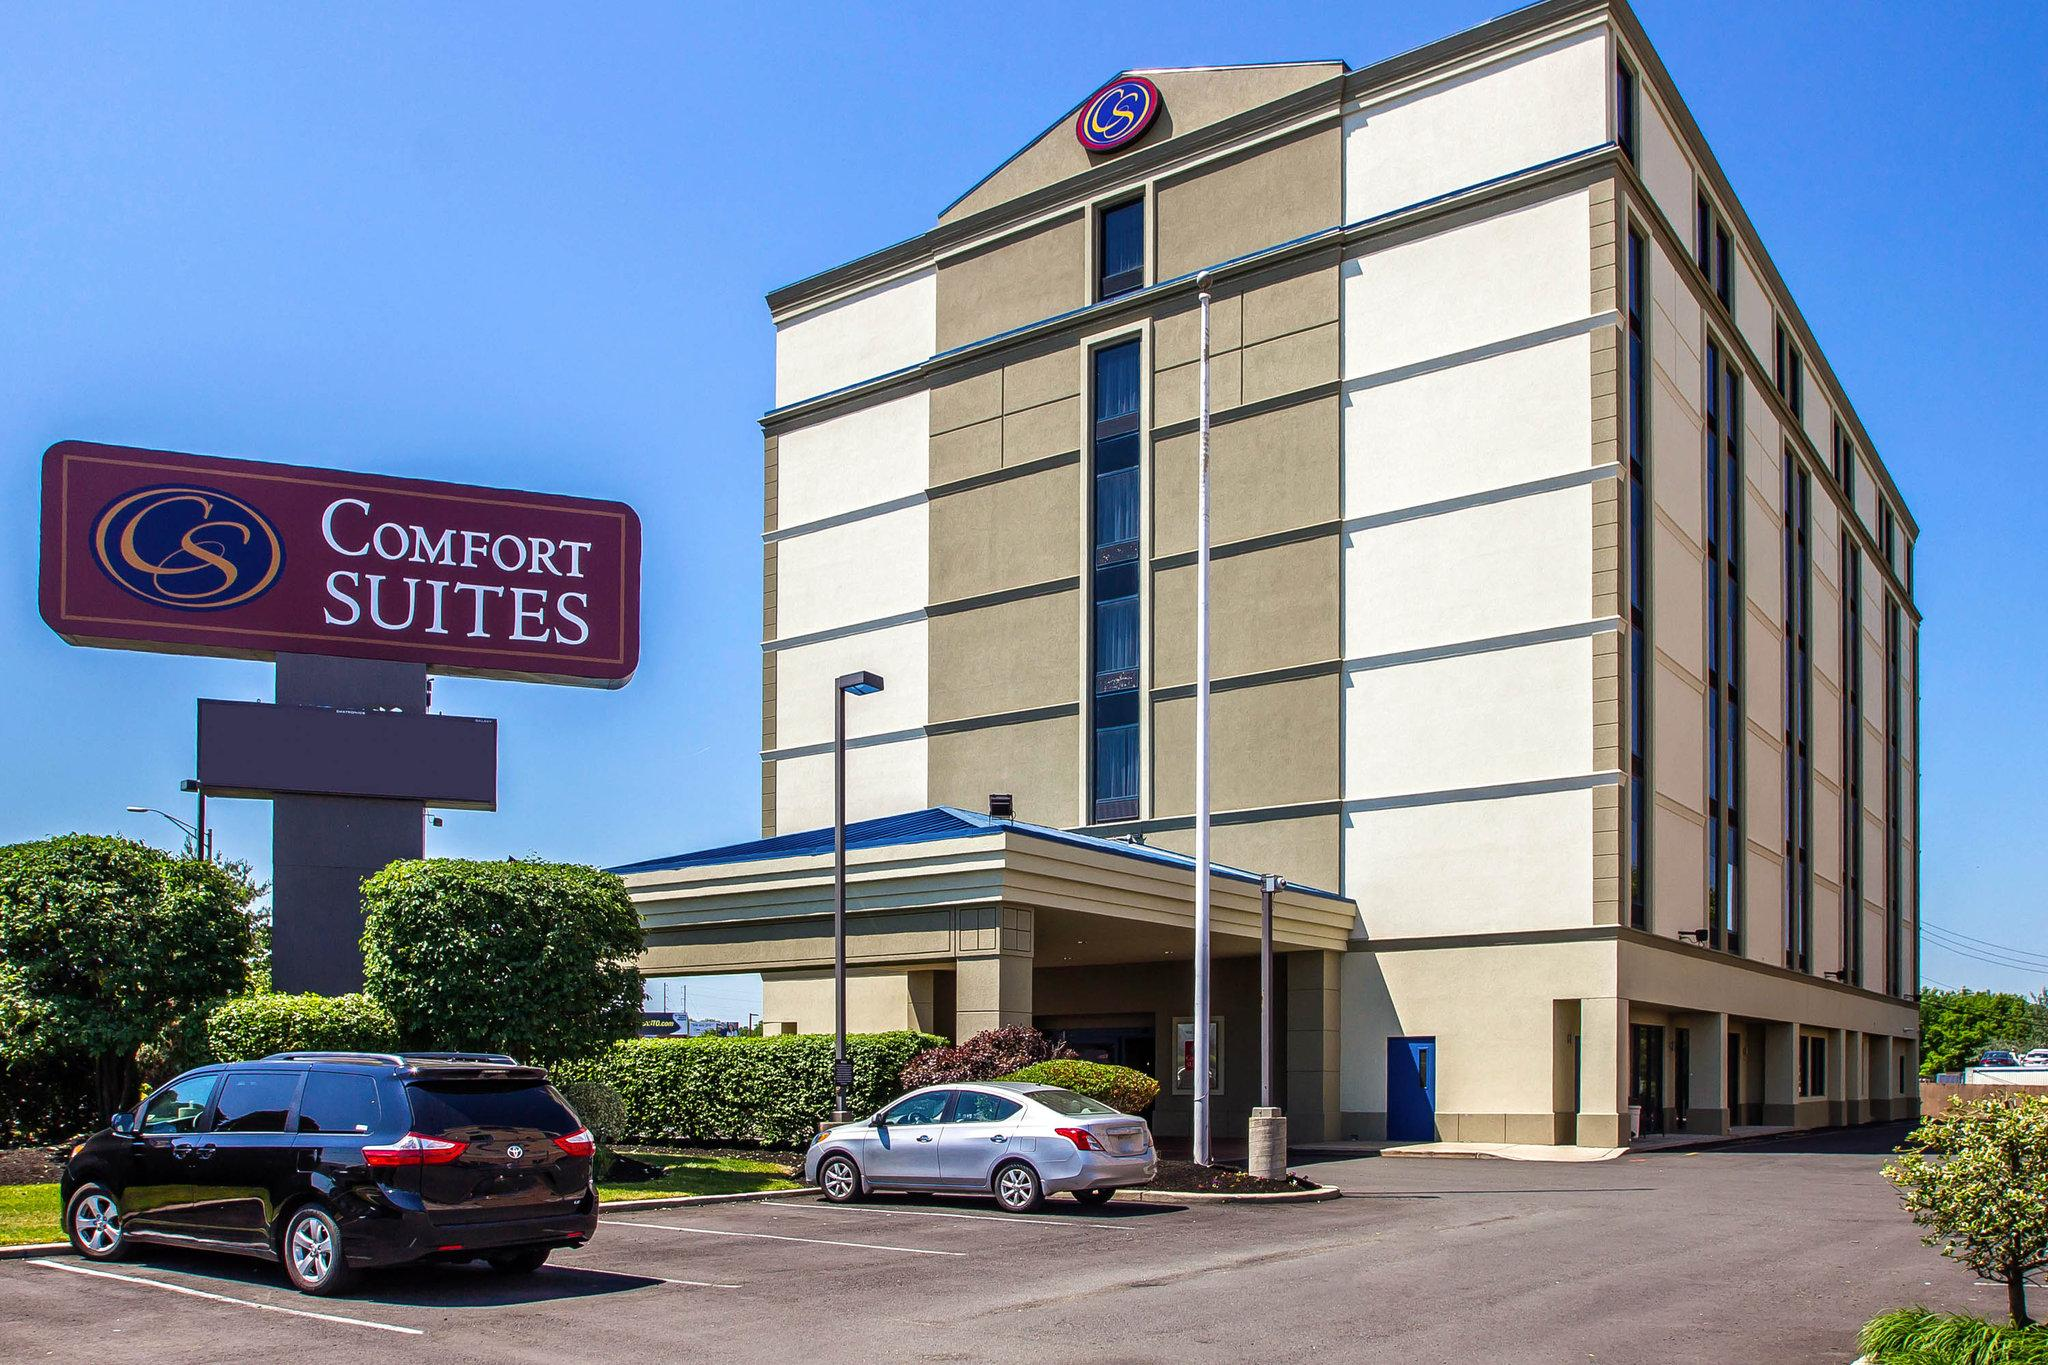 Comfort Suites at Woodbridge